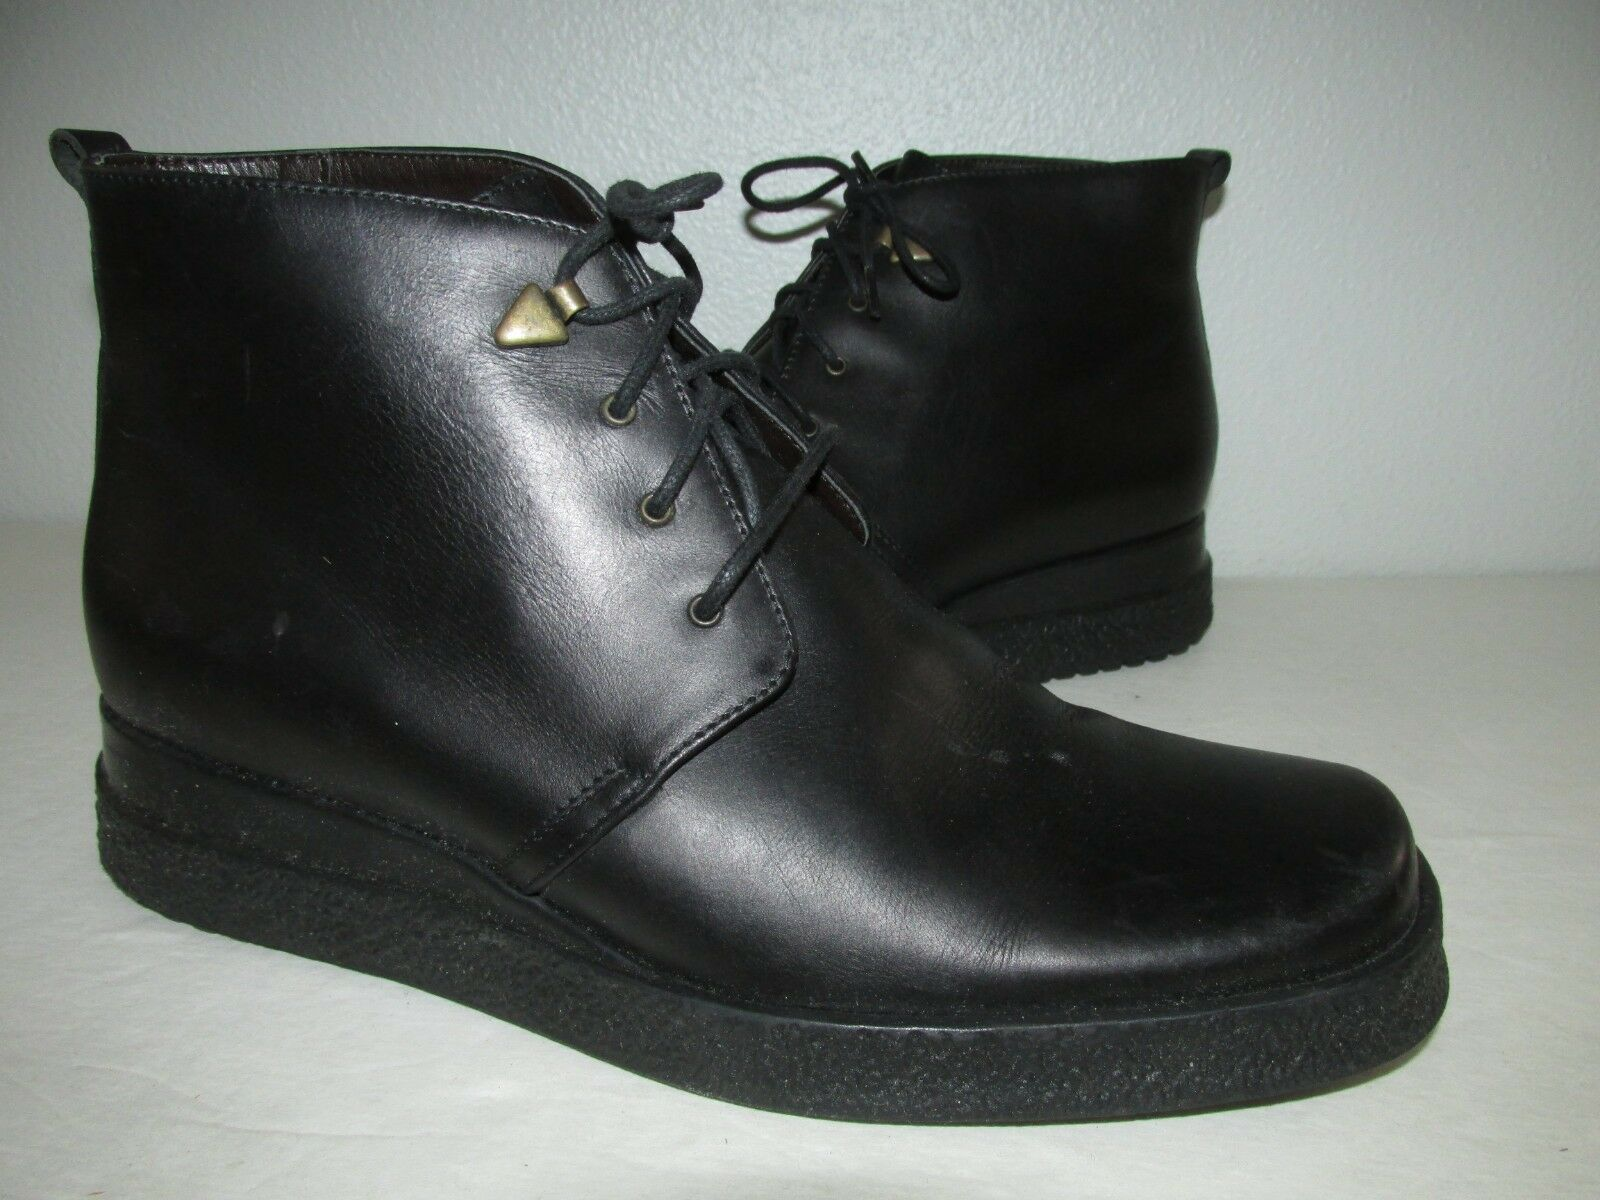 Vintage Stonefly Size EU 37 US 6.5-7 Black Lace Up Leather Wedge Boots